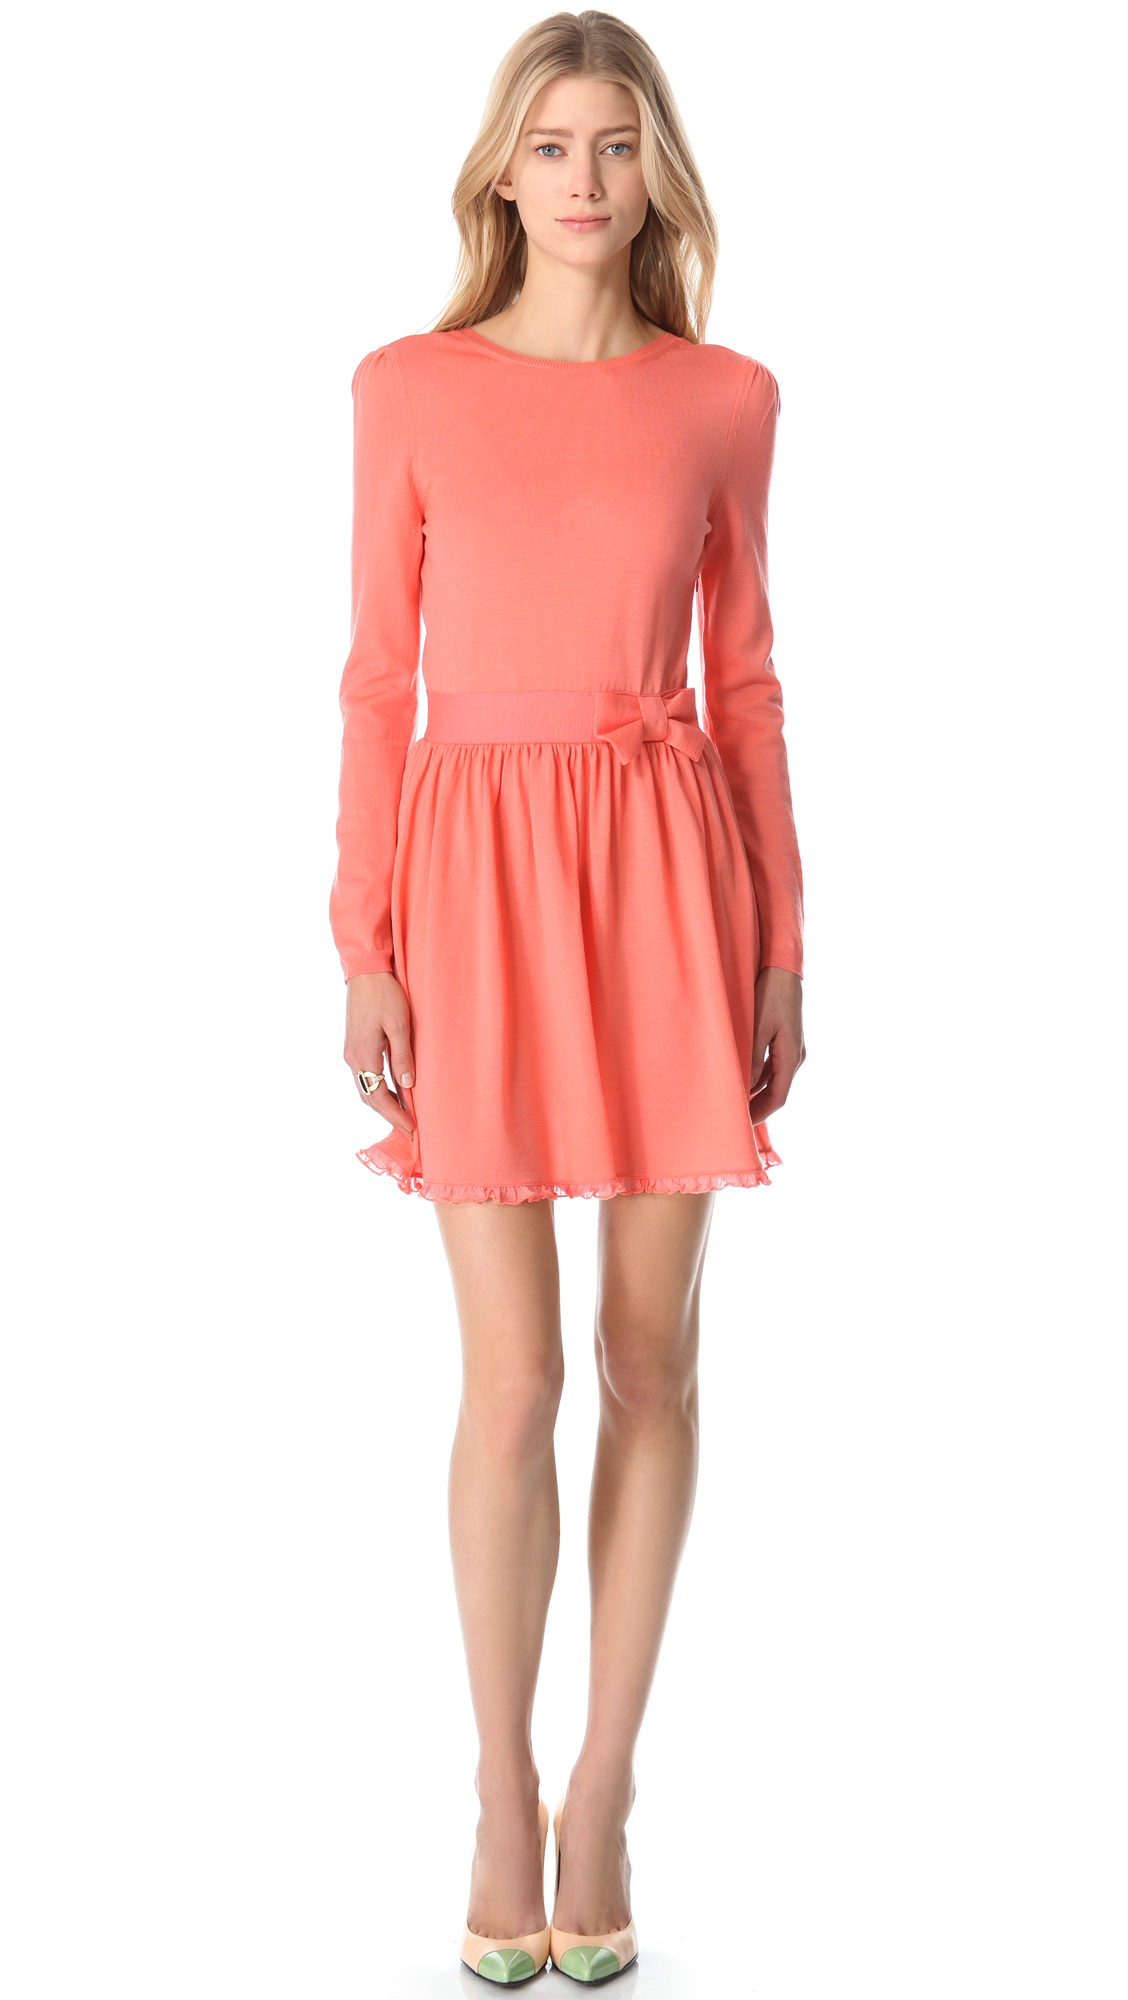 valentino sleeve bow belt dress in pink coral